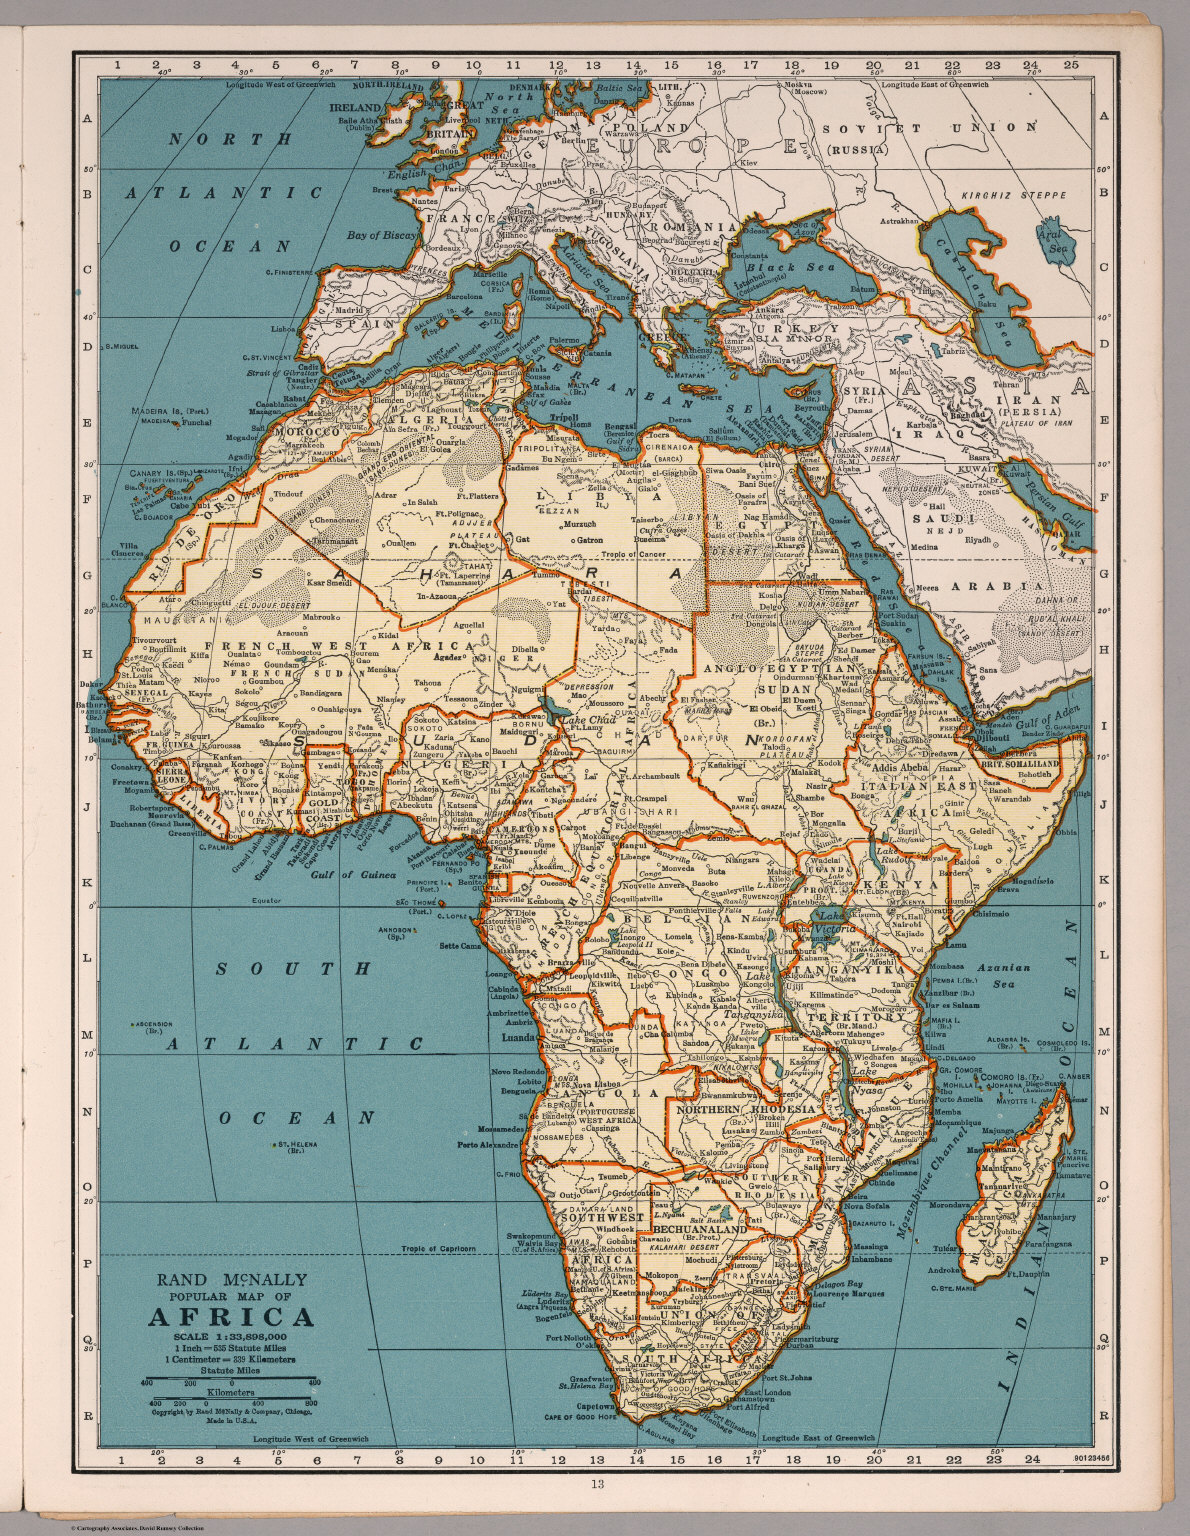 Rand mcnally popular map africa david rumsey historical map collection rand mcnally popular map africa gumiabroncs Choice Image